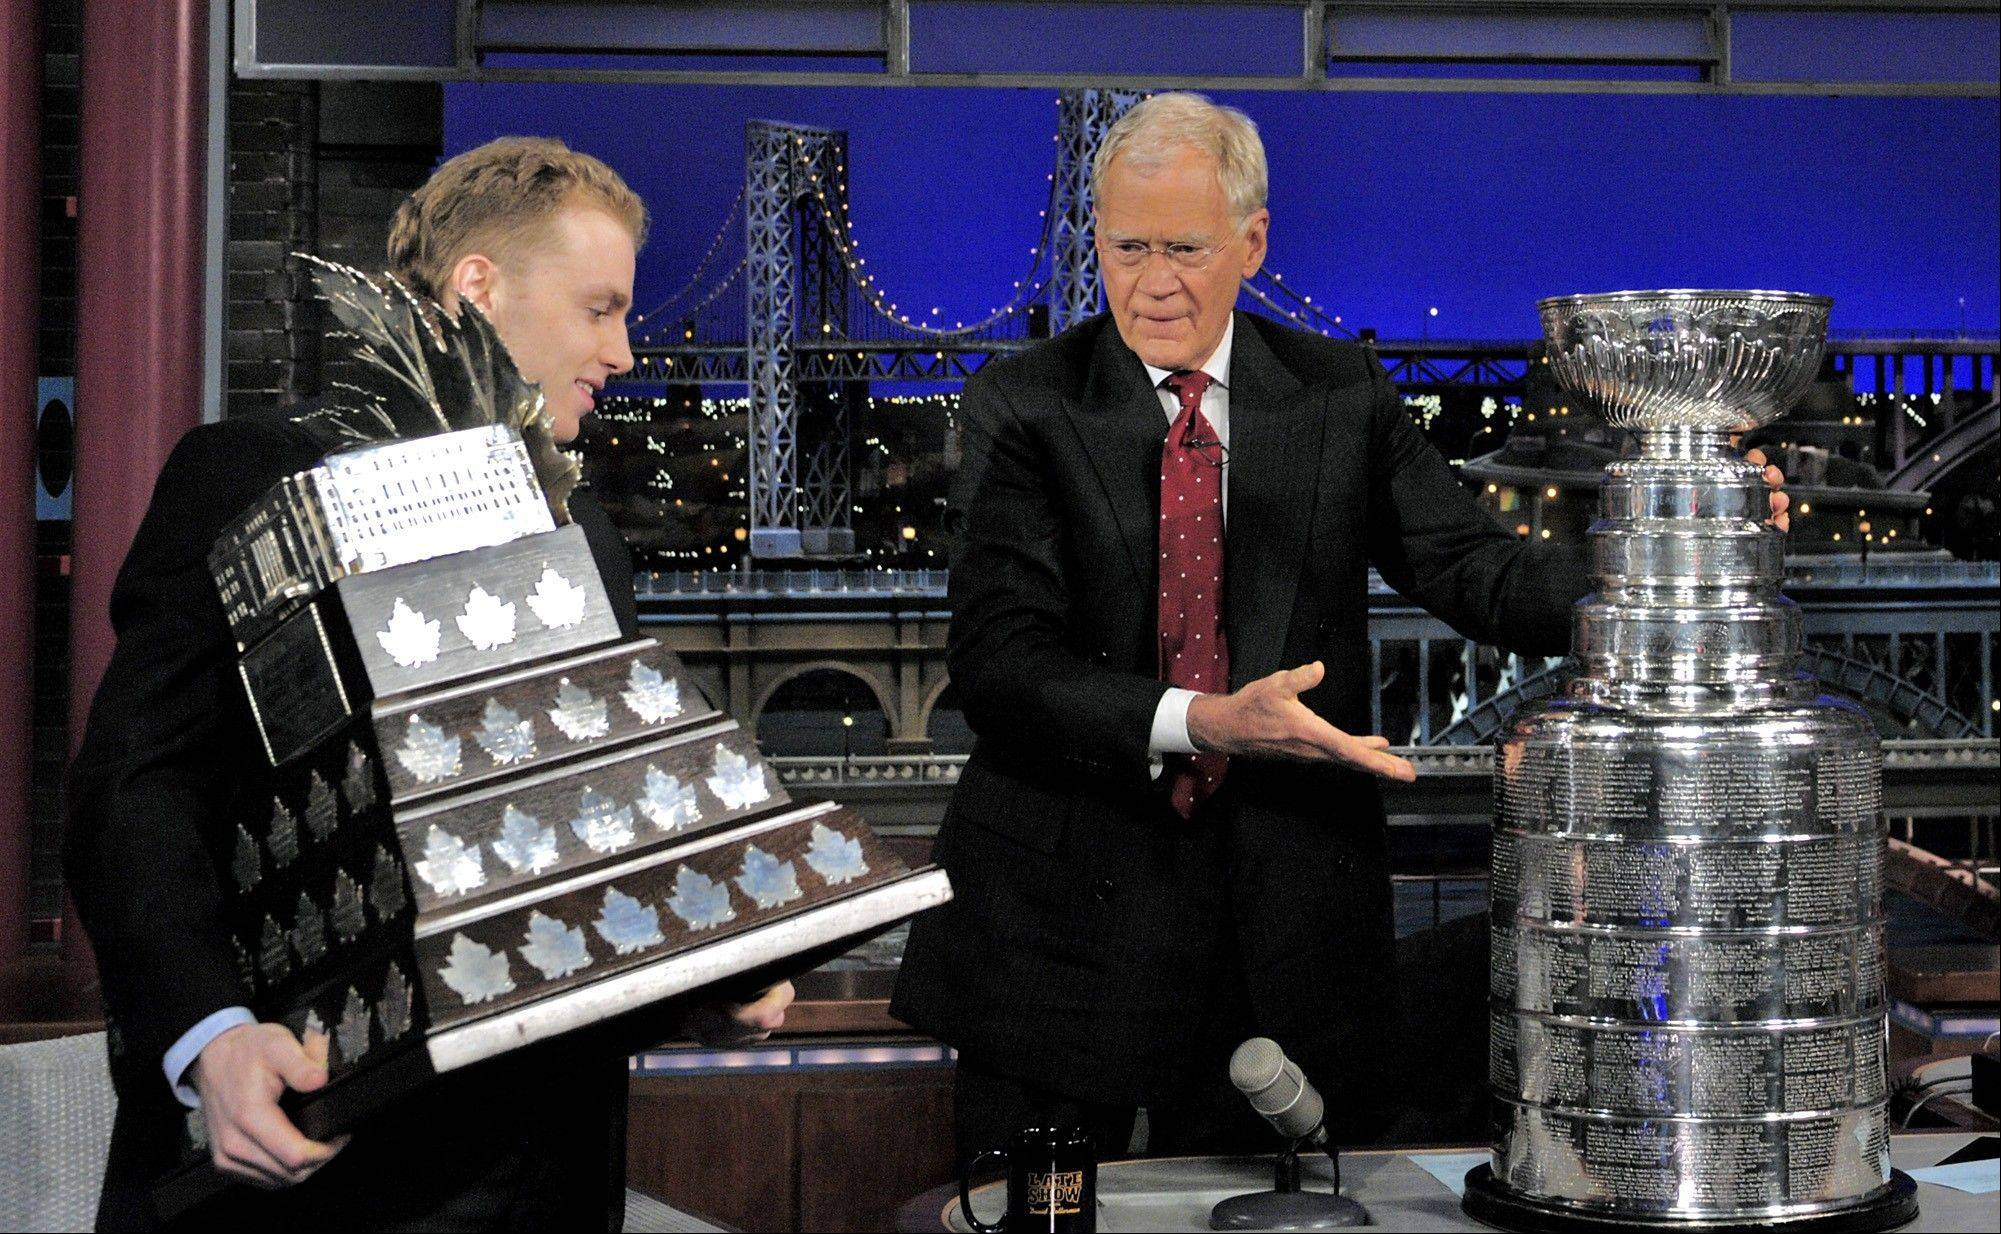 Hawks' Kane brings Cup to Letterman show